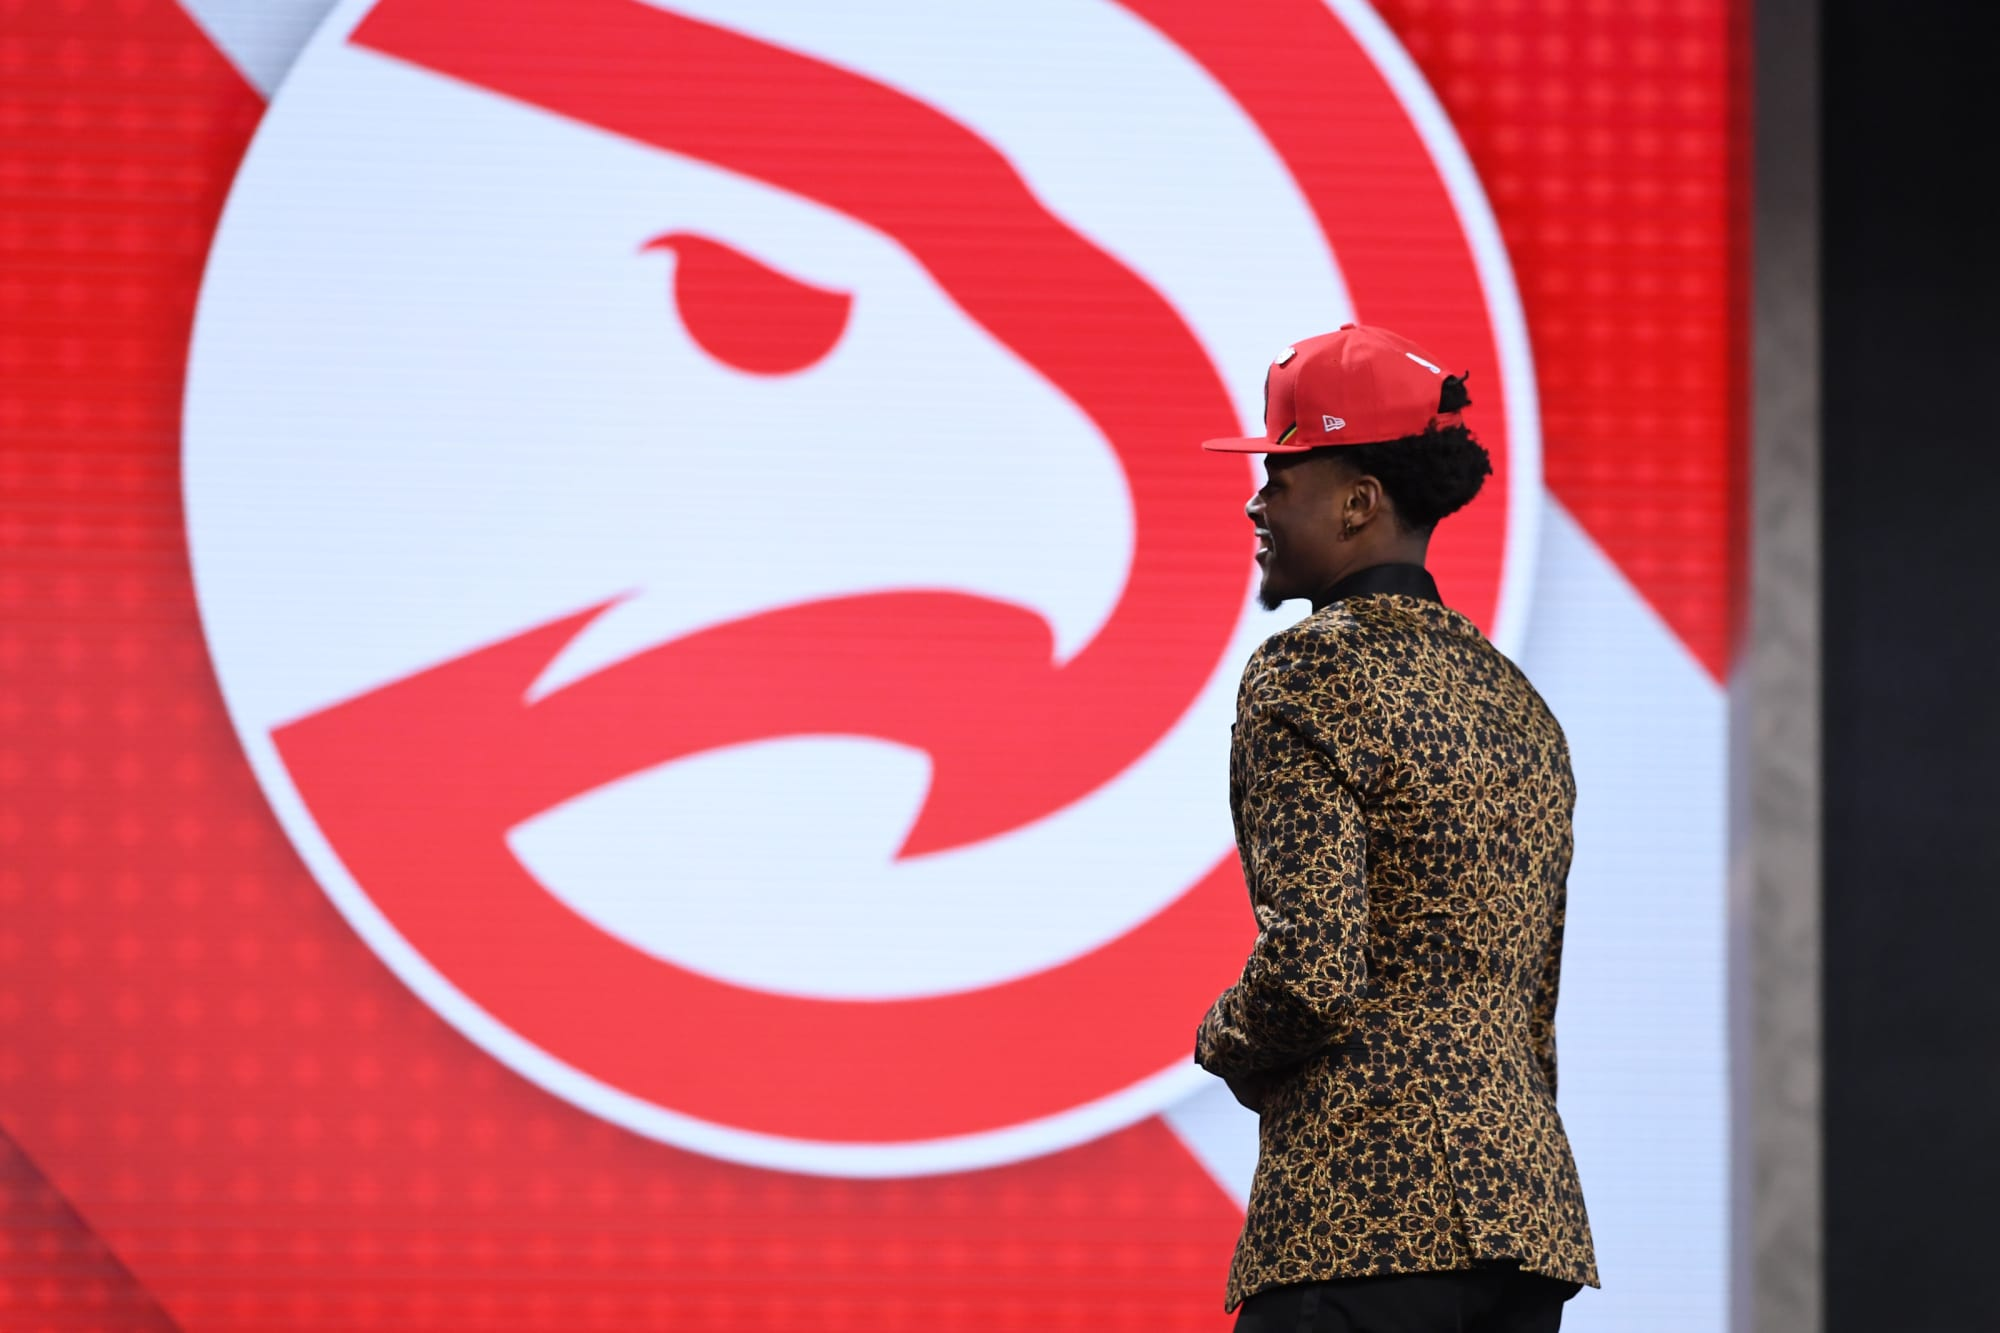 Atlanta Hawks Using 2k20 To Simulate The Nba Draft